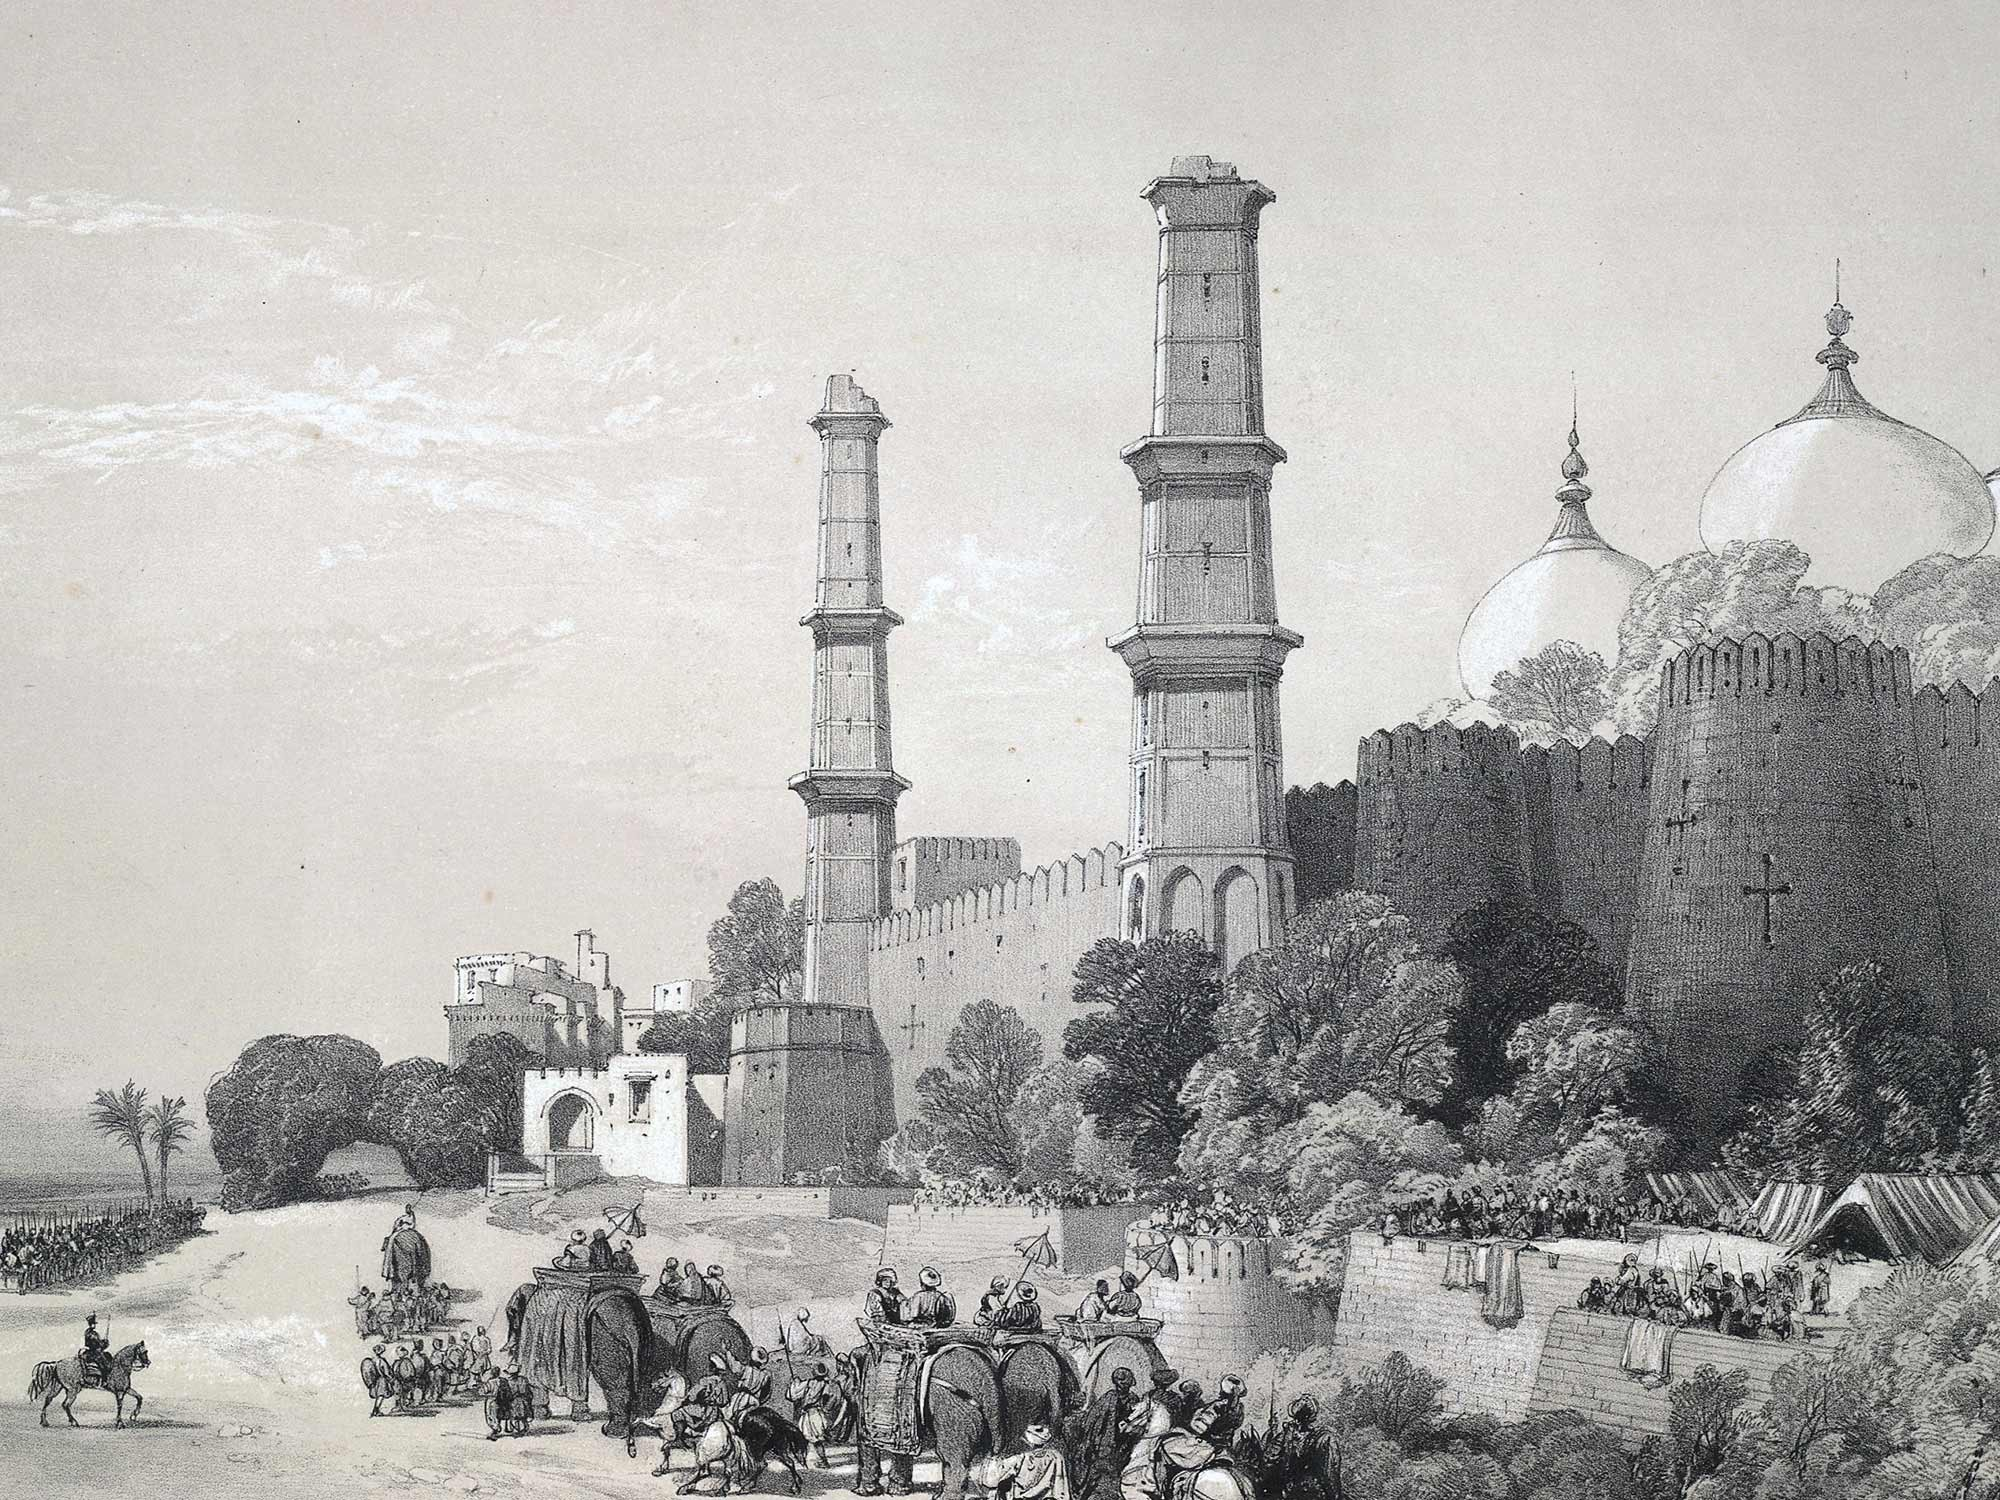 Maharaja Duleep Singh enters his palace in Lahore, India in 1846 escorted by British troops